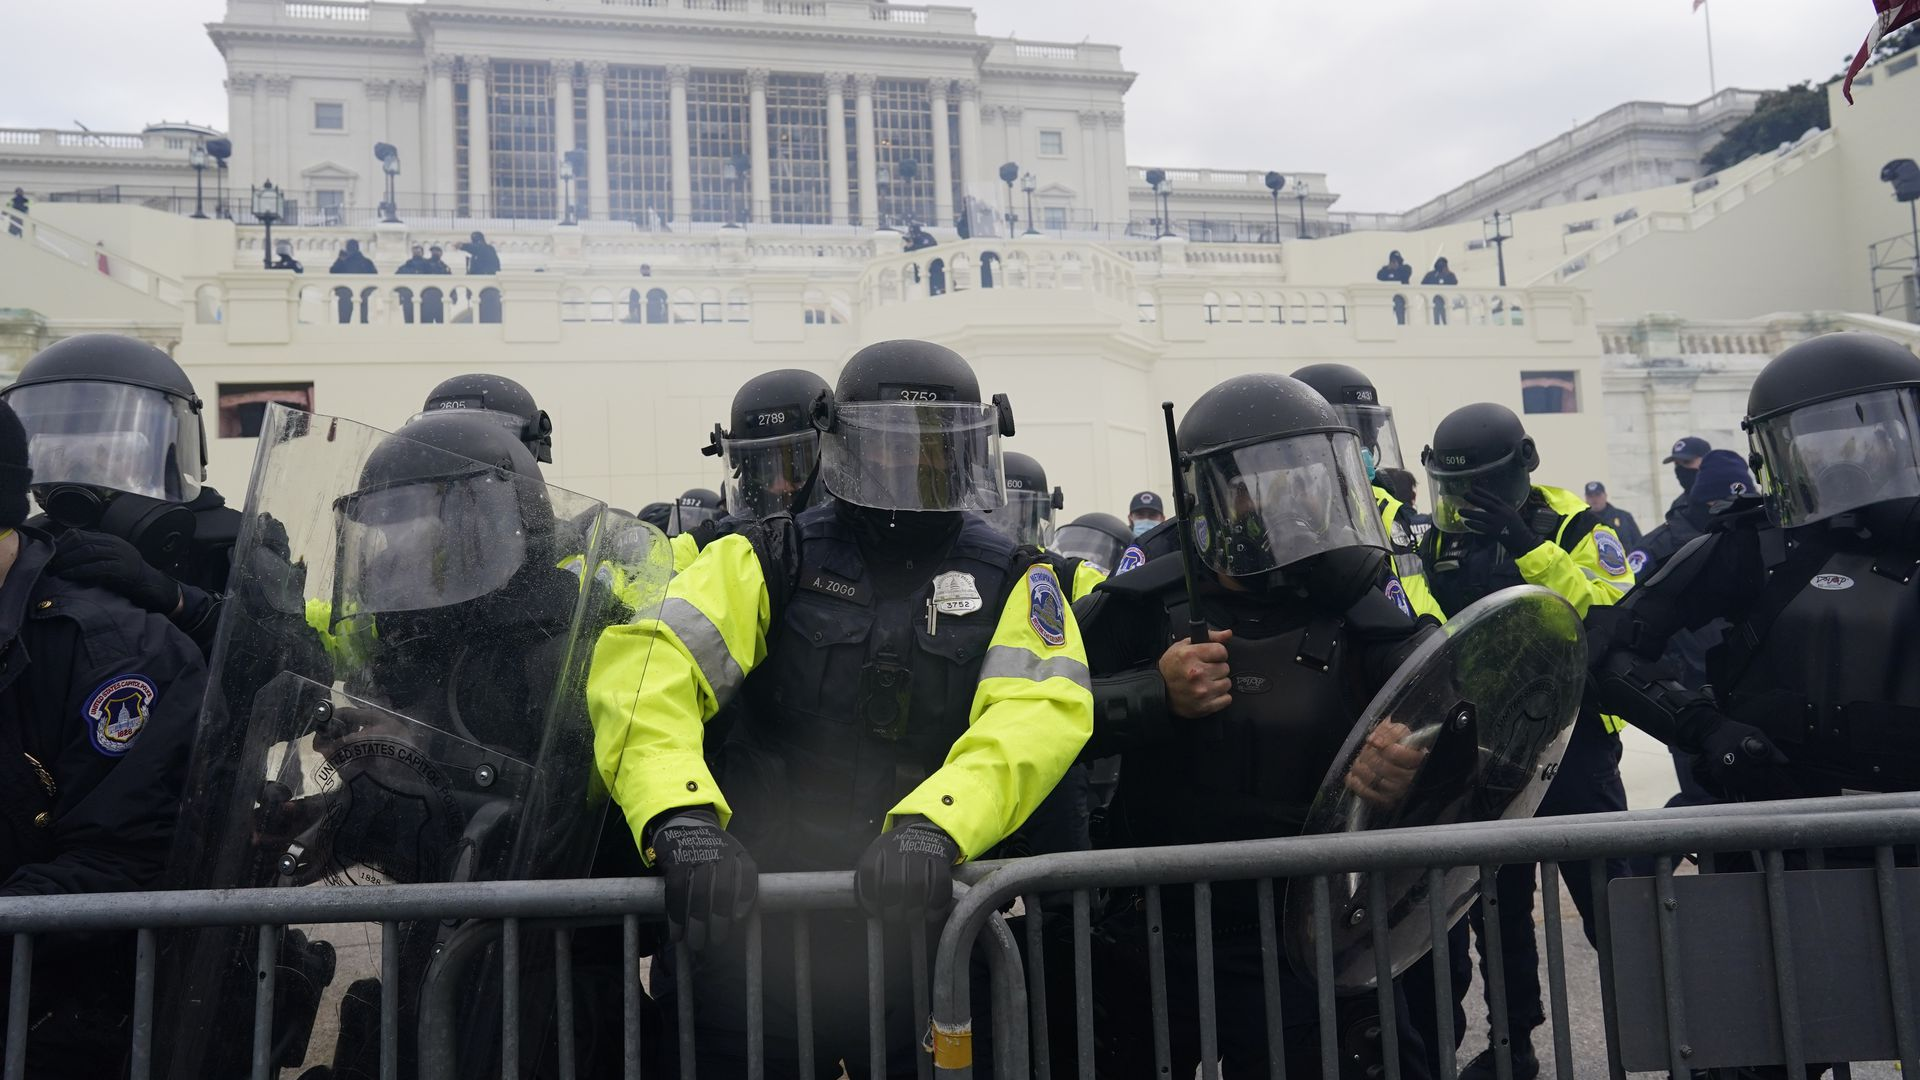 Police officers in riot gear stand against barriers during the Jan 6 riot. The Capitol building is in the background.